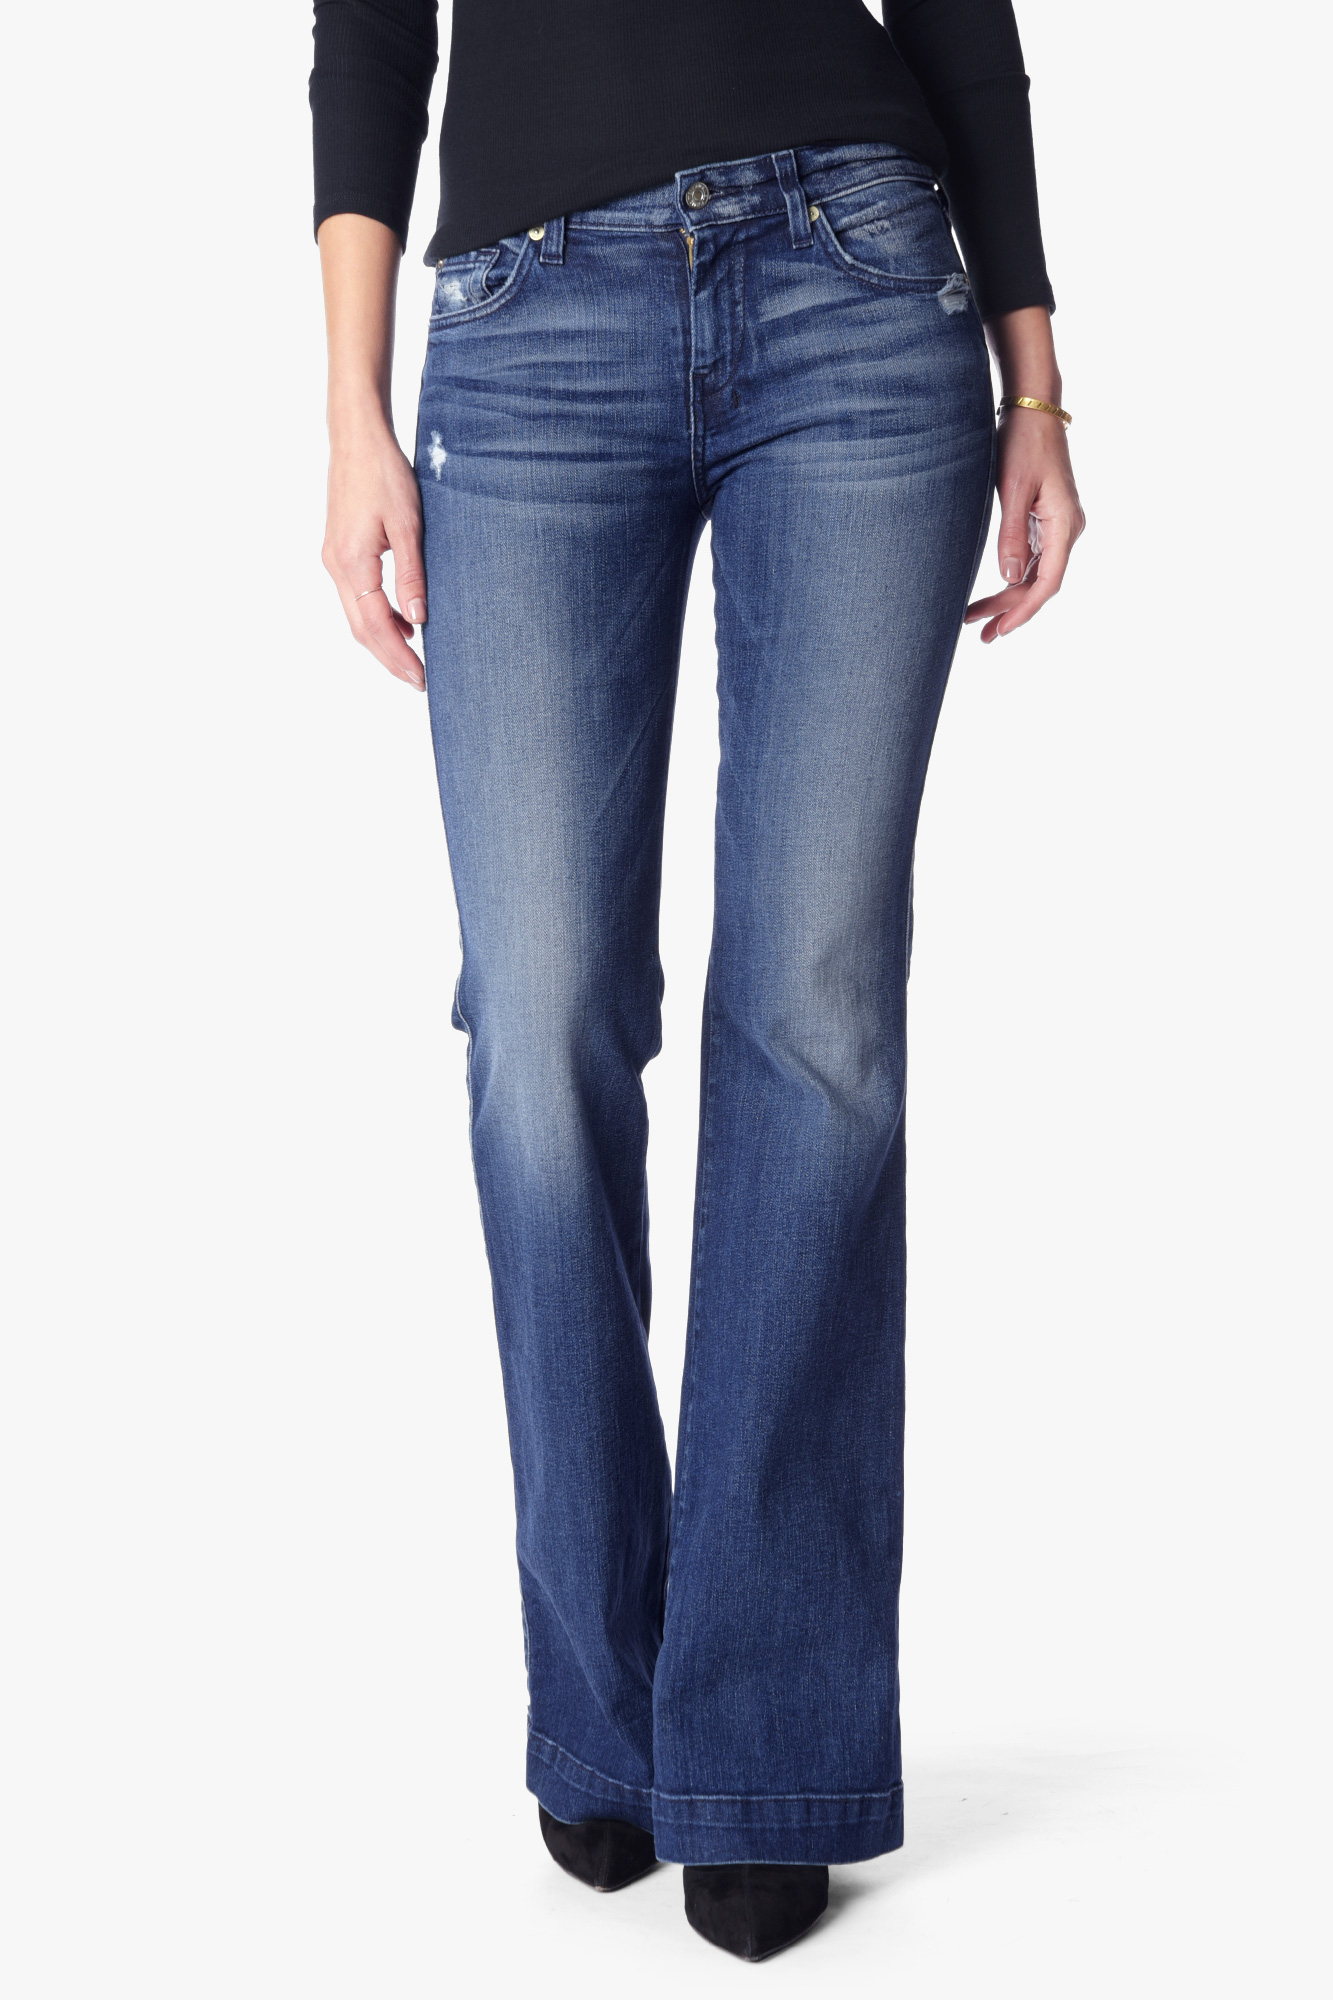 7 For All Mankind Womenu0026#39;s Dojo Original Trouser Jean in Lake Blue